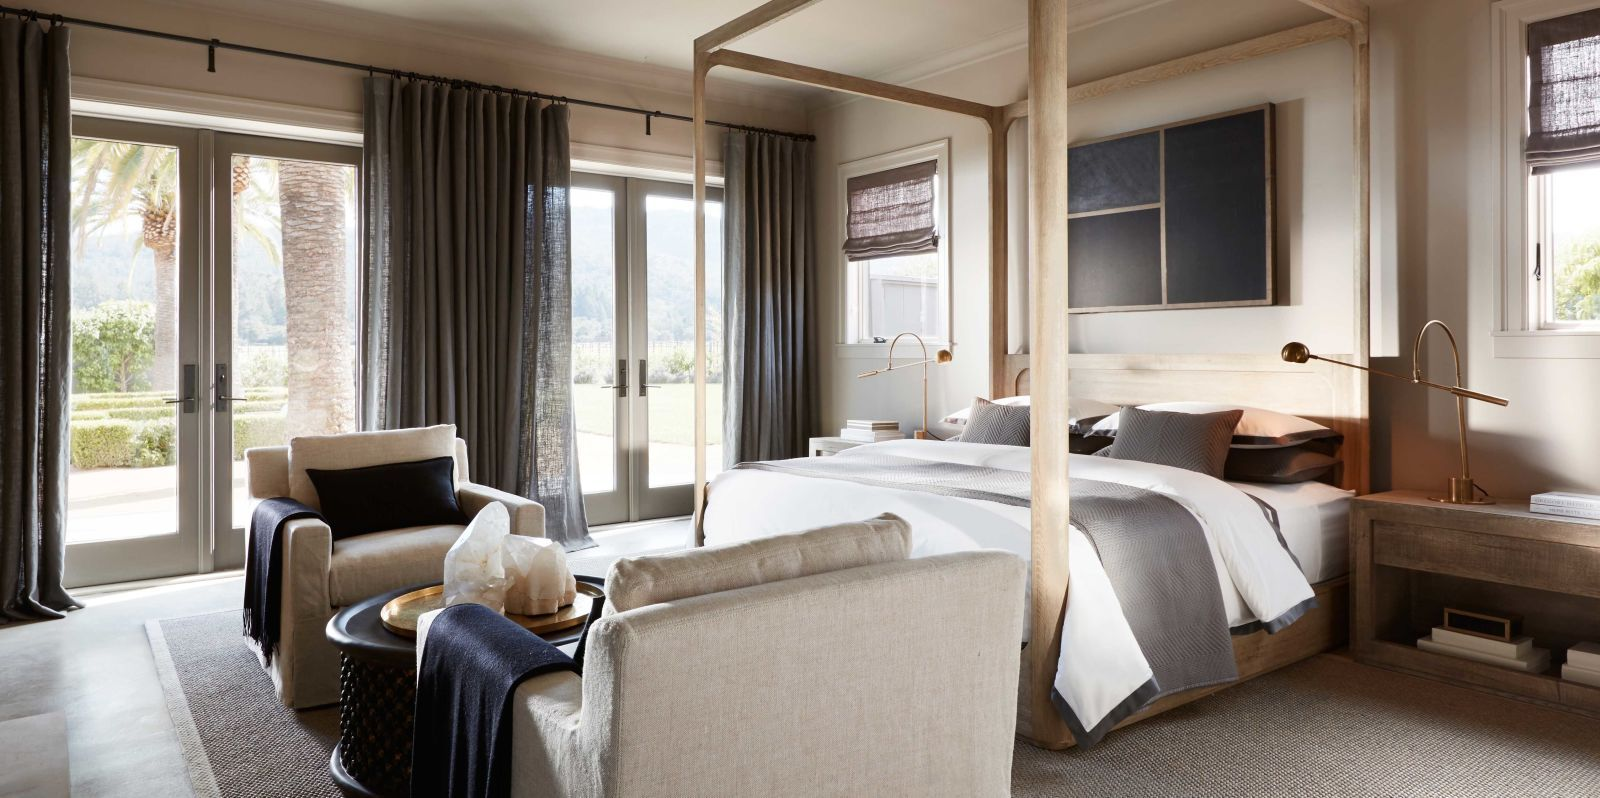 Restoration hardware bedroom - The Restoration Hardware Ceo S Napa House Is Straight Out Of A Catalog